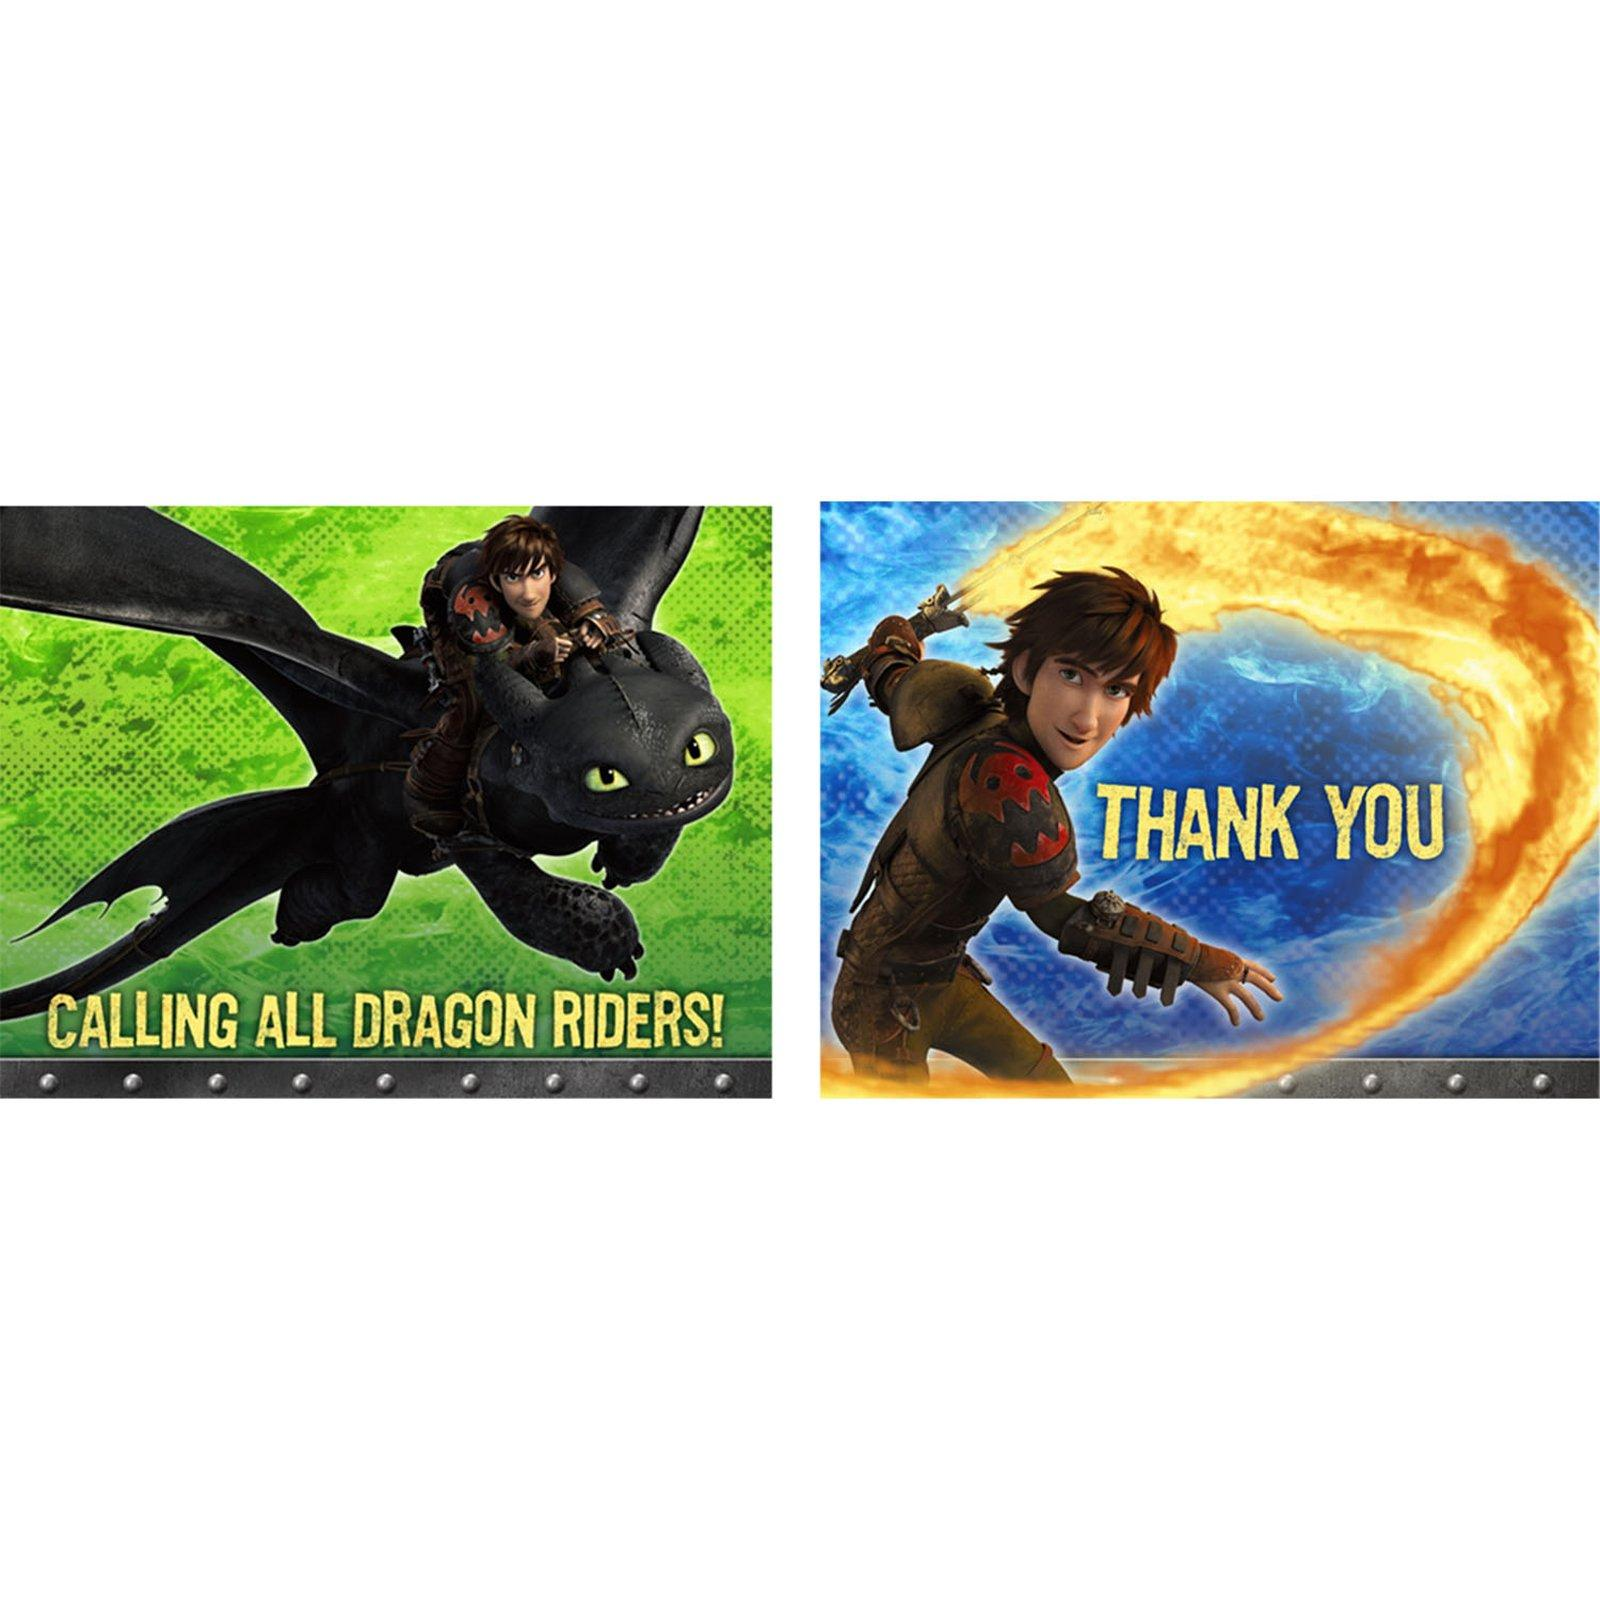 How to Train Your Dragon 2 - Invitations & Thank You Postcard Combo